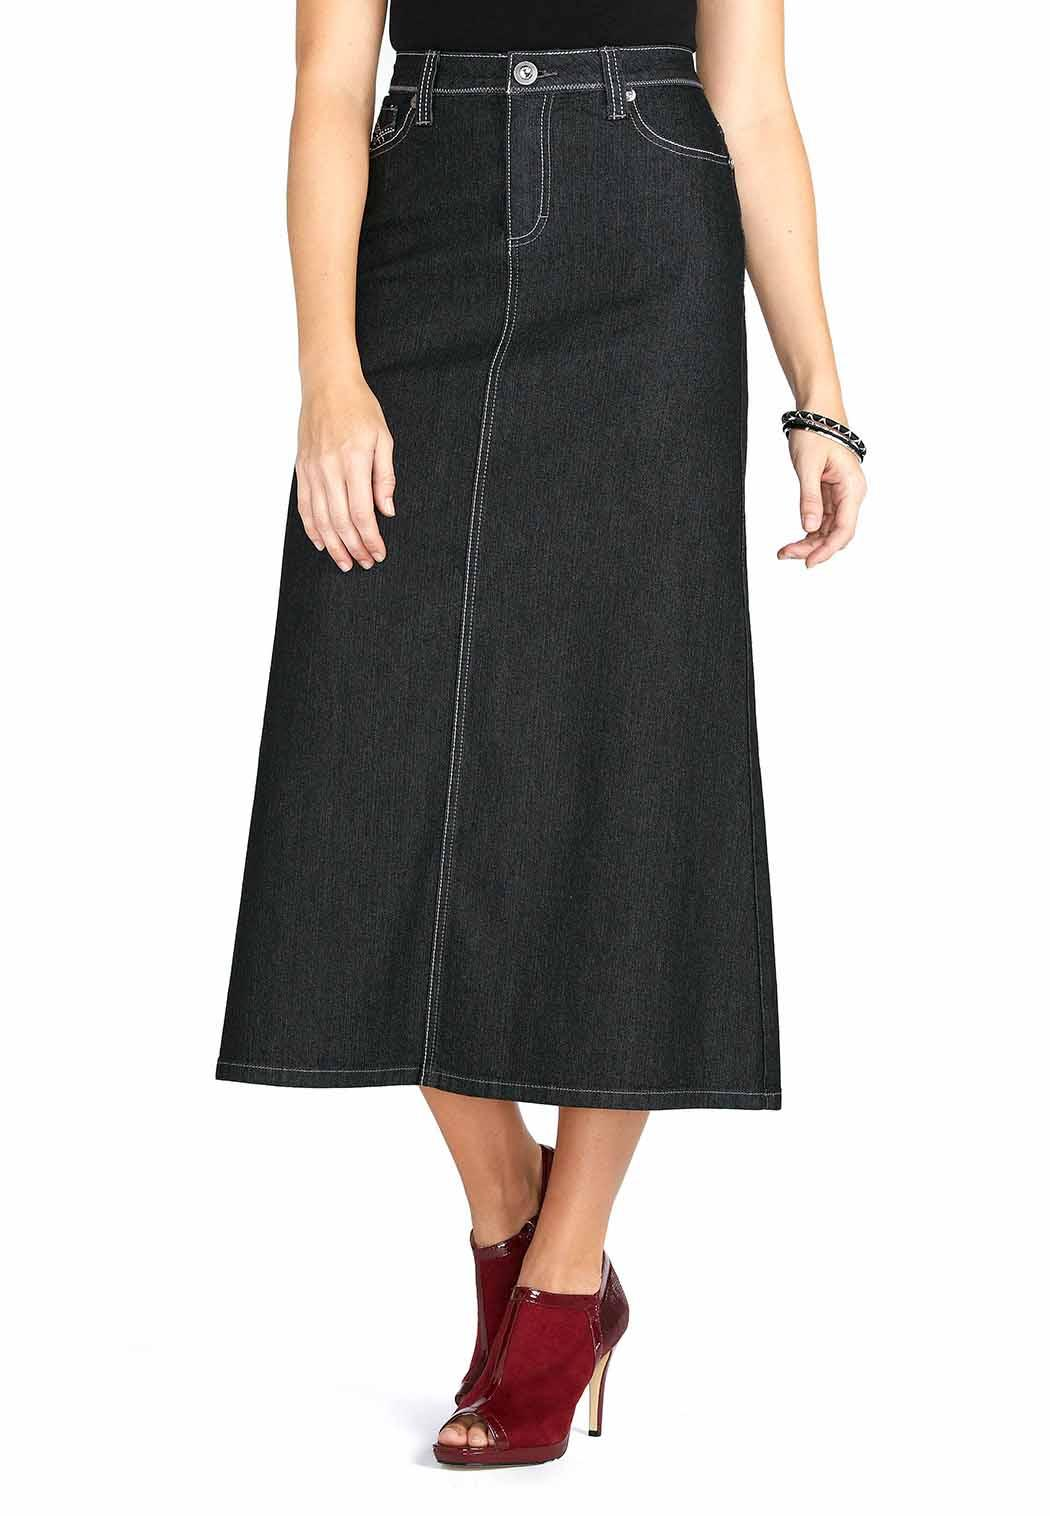 Maxi plus size skirts drape beautifully over the body to provide extra coverage with a sophisticated design. A long, black skirt is a versatile choice for any closet. Pair this flowing garment with a cozy plus size sweater for an elegant winter look, or top it with a breezy chiffon tank in the summer.